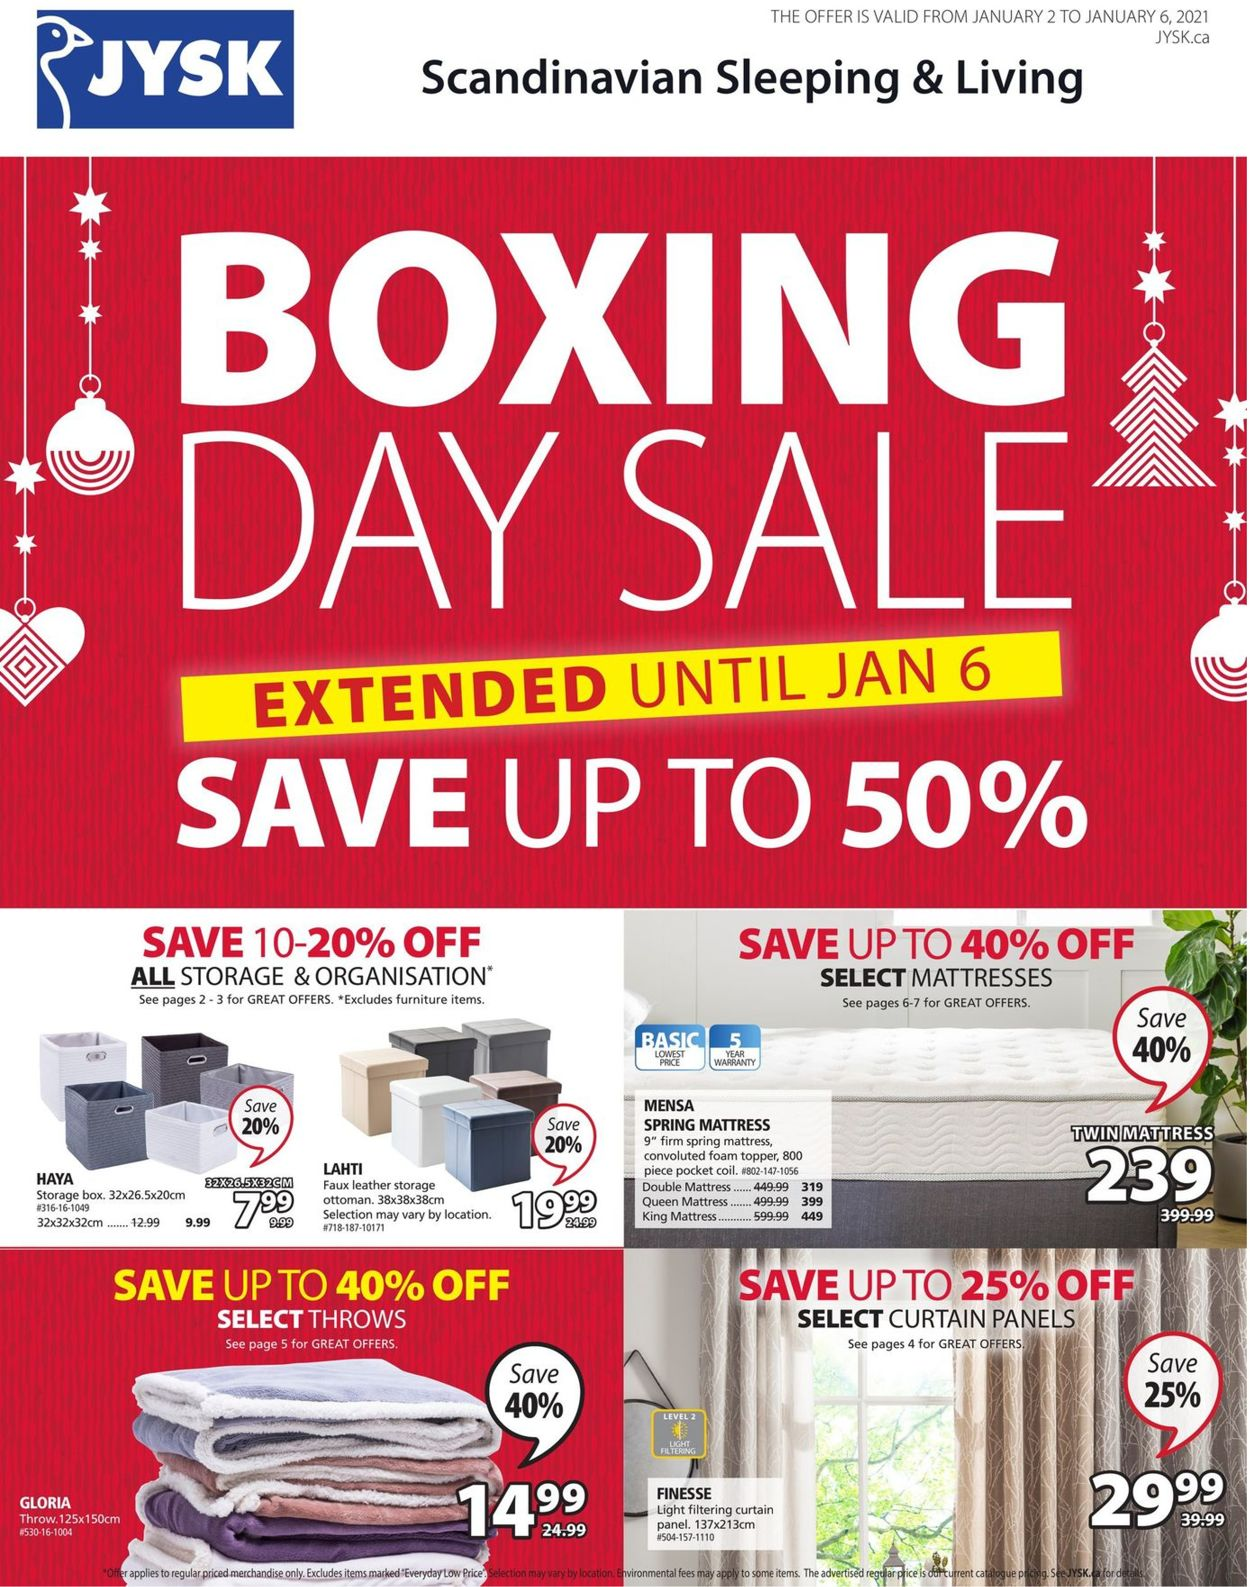 JYSK - Boxing Day Sale 2020/2021 Flyer - 01/02-01/06/2021